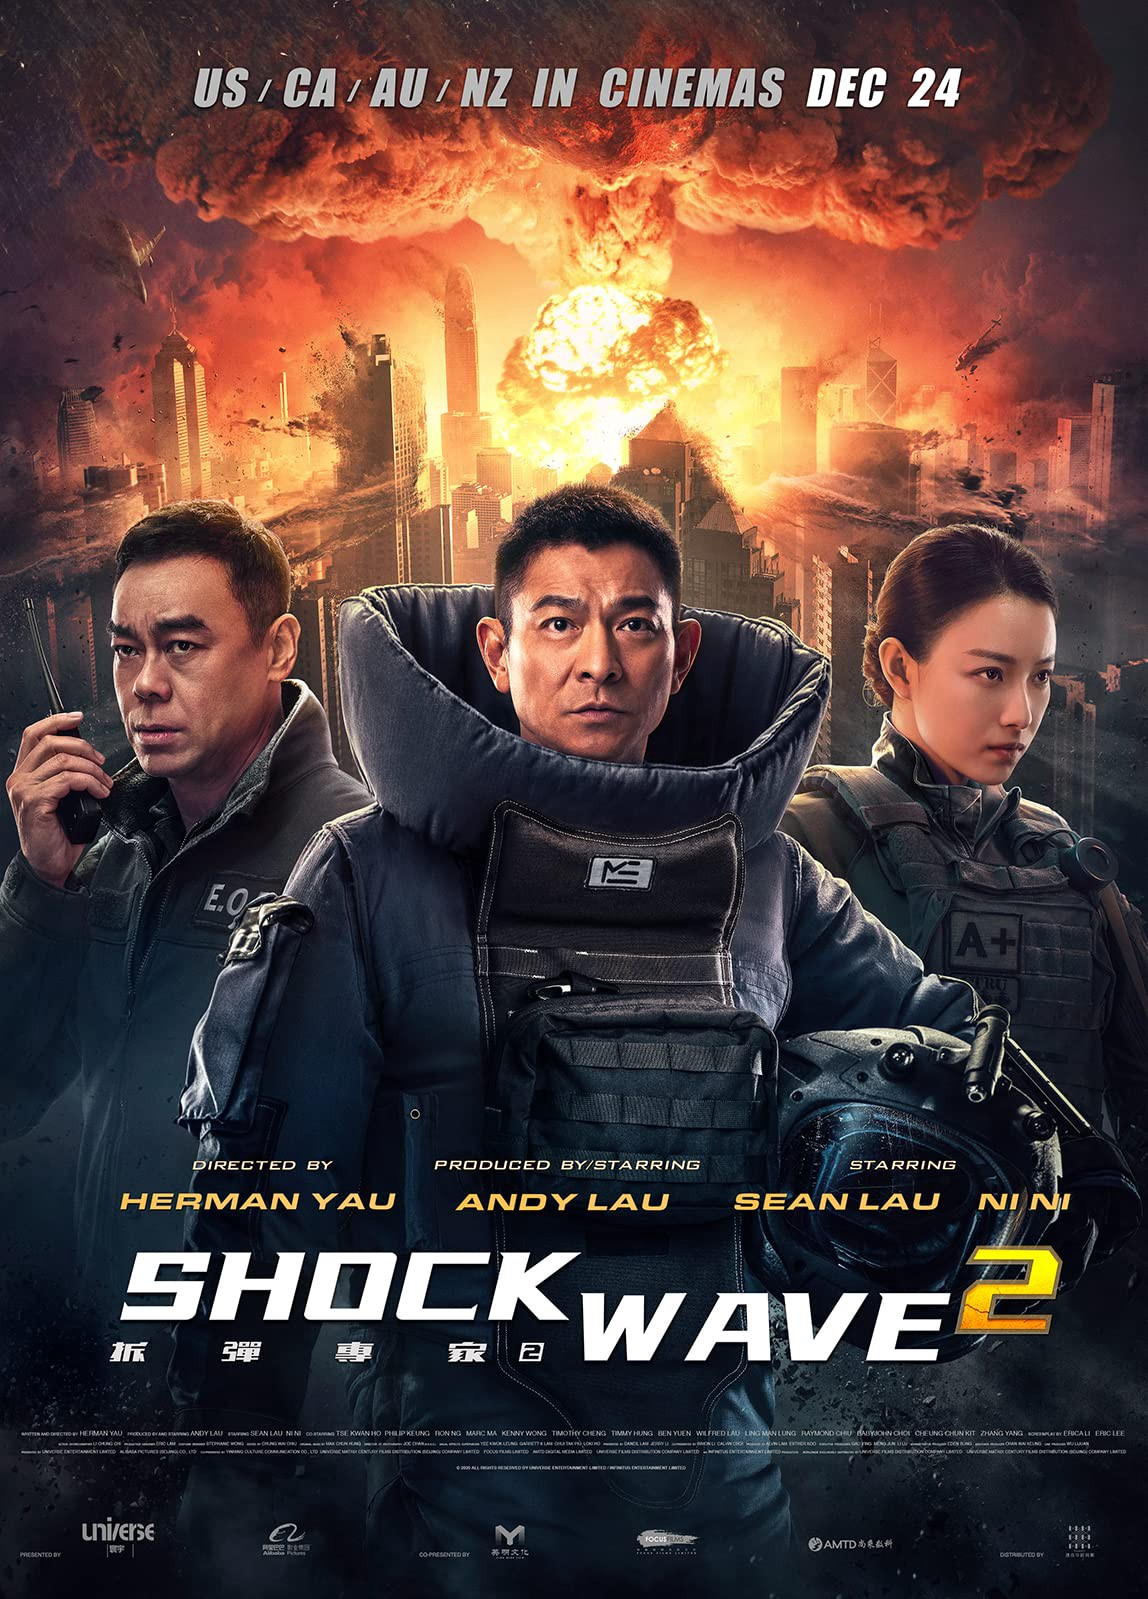 Shock Wave 2 (2020) Dual Audio Hindi 400MB HC HDRip 480p x264